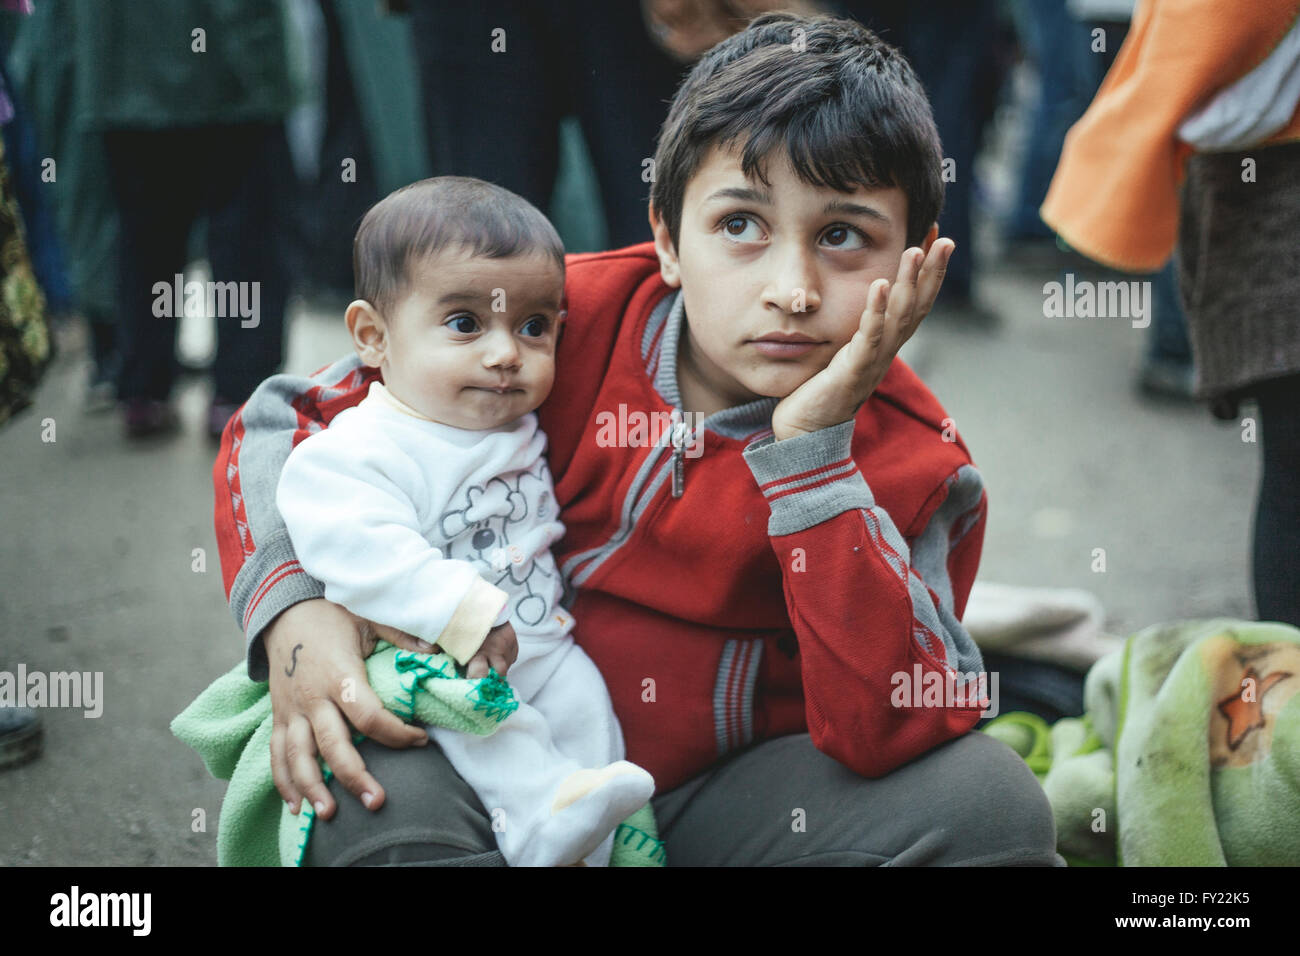 Boy from Syria after arriving with his little brother, refugee camp in Idomeni, border with Macedonia, Greece - Stock Image